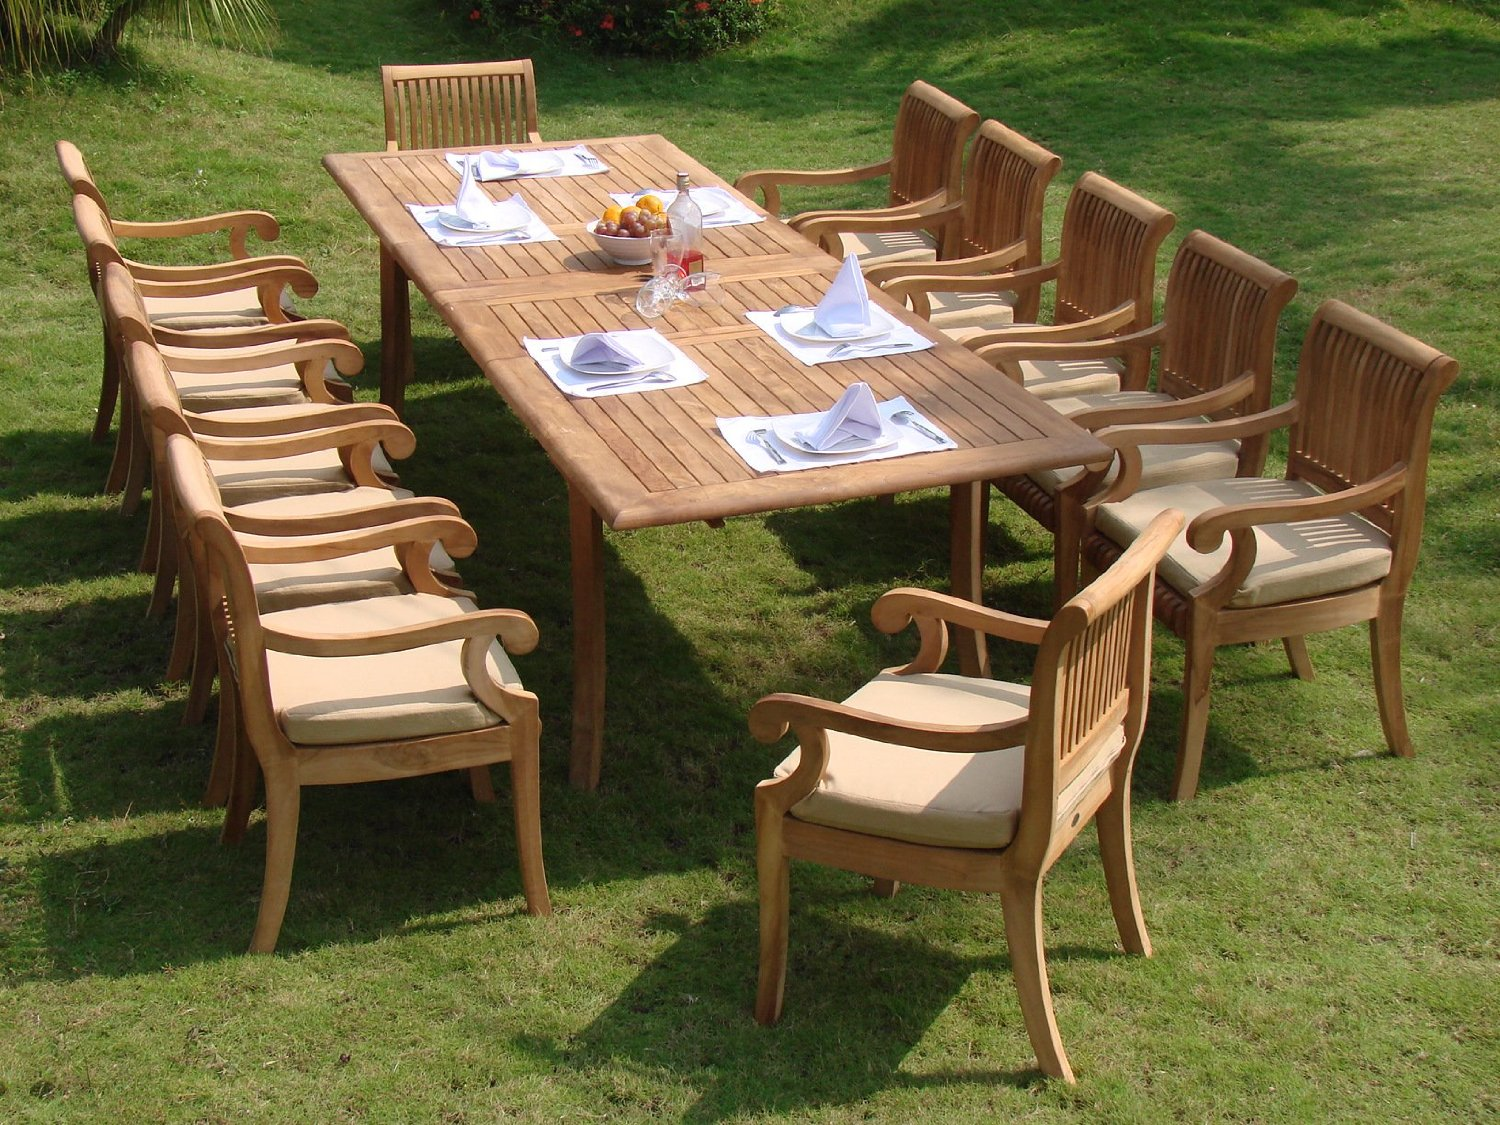 Compare And Choose Reviewing The Best Teak Outdoor Dining Sets - Teak patio table with leaf